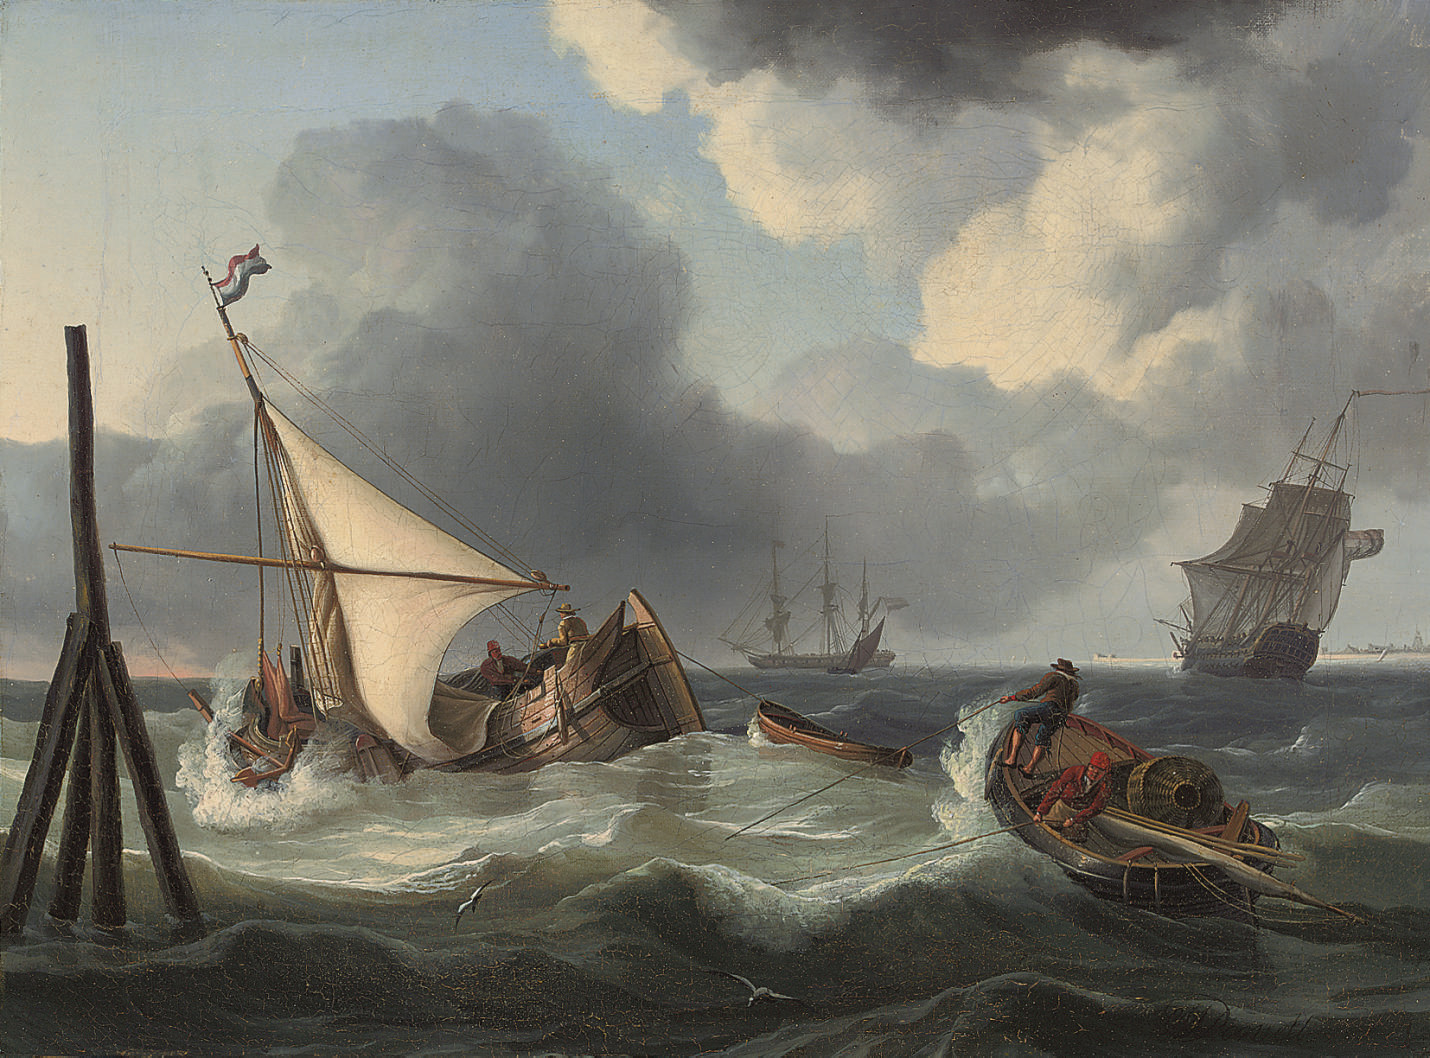 Fishermen wrestling with the swell at high tide, off the mouth of the Scheldt